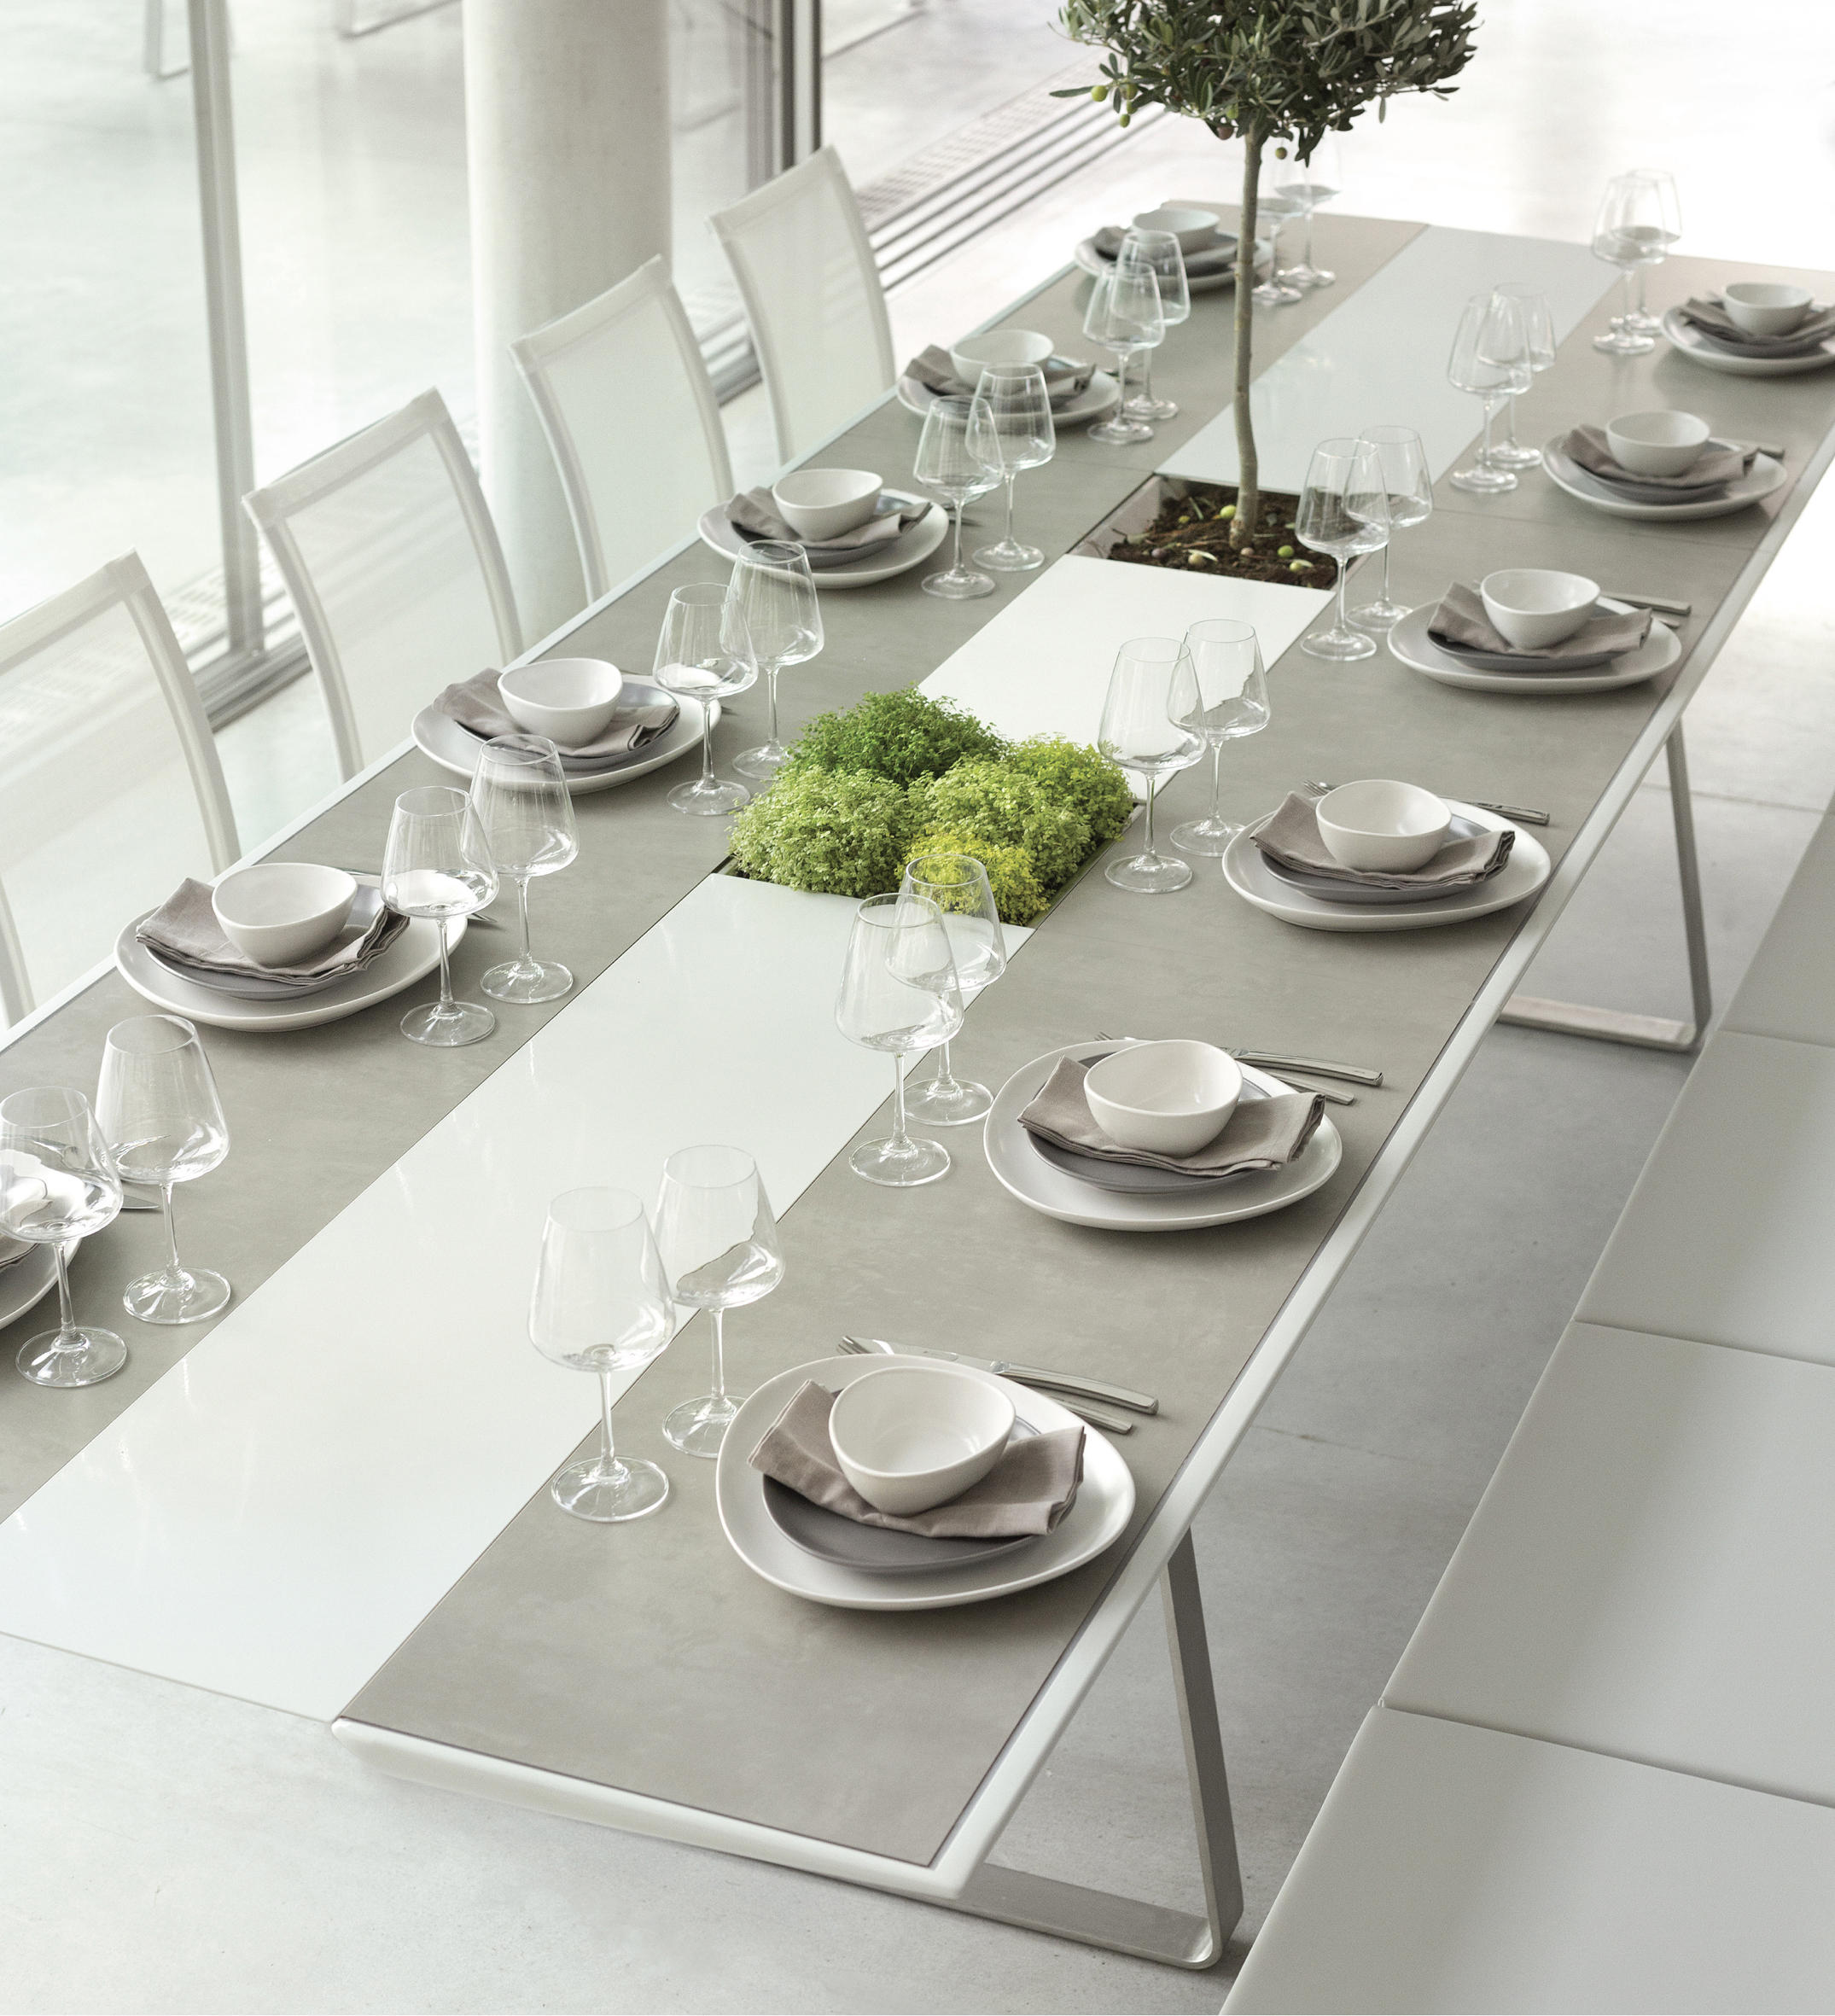 Table De Jardin Ego > Extrados Table 240 Dining Tables From Ego Paris Architonic